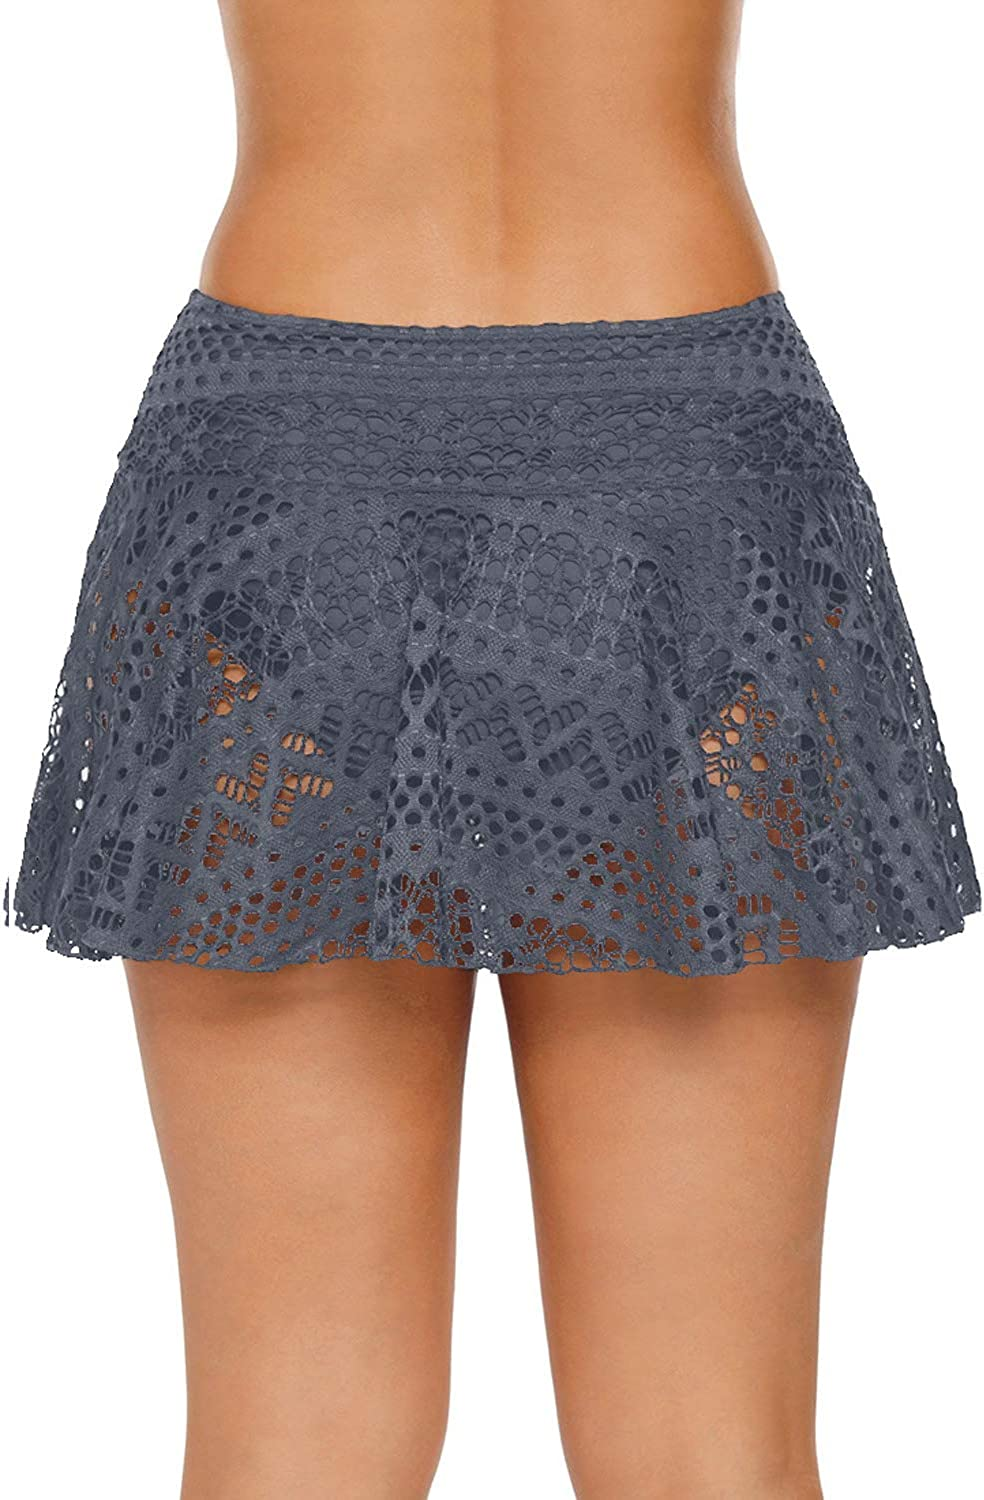 Womens Crochet Lacy Lace Short Shorts NEW Plus Size Fashionista